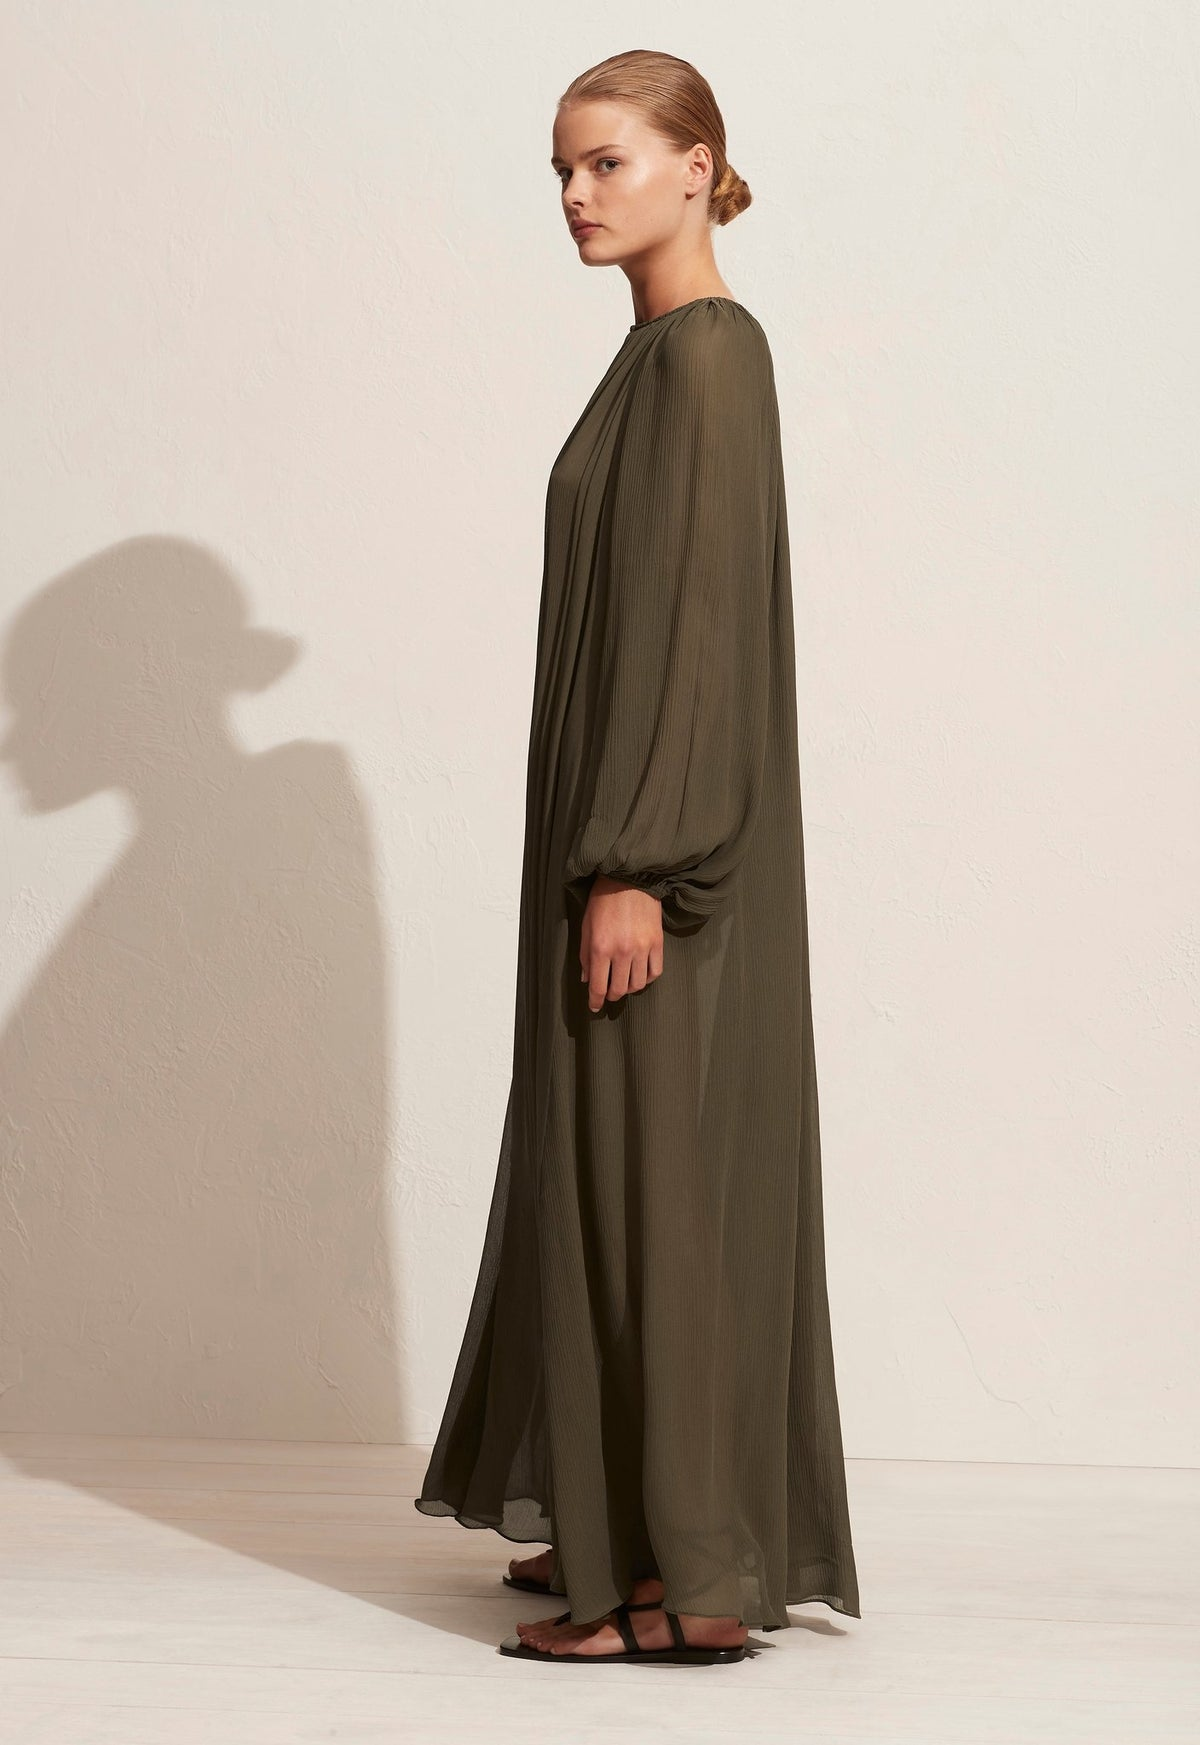 The Blouson Dress